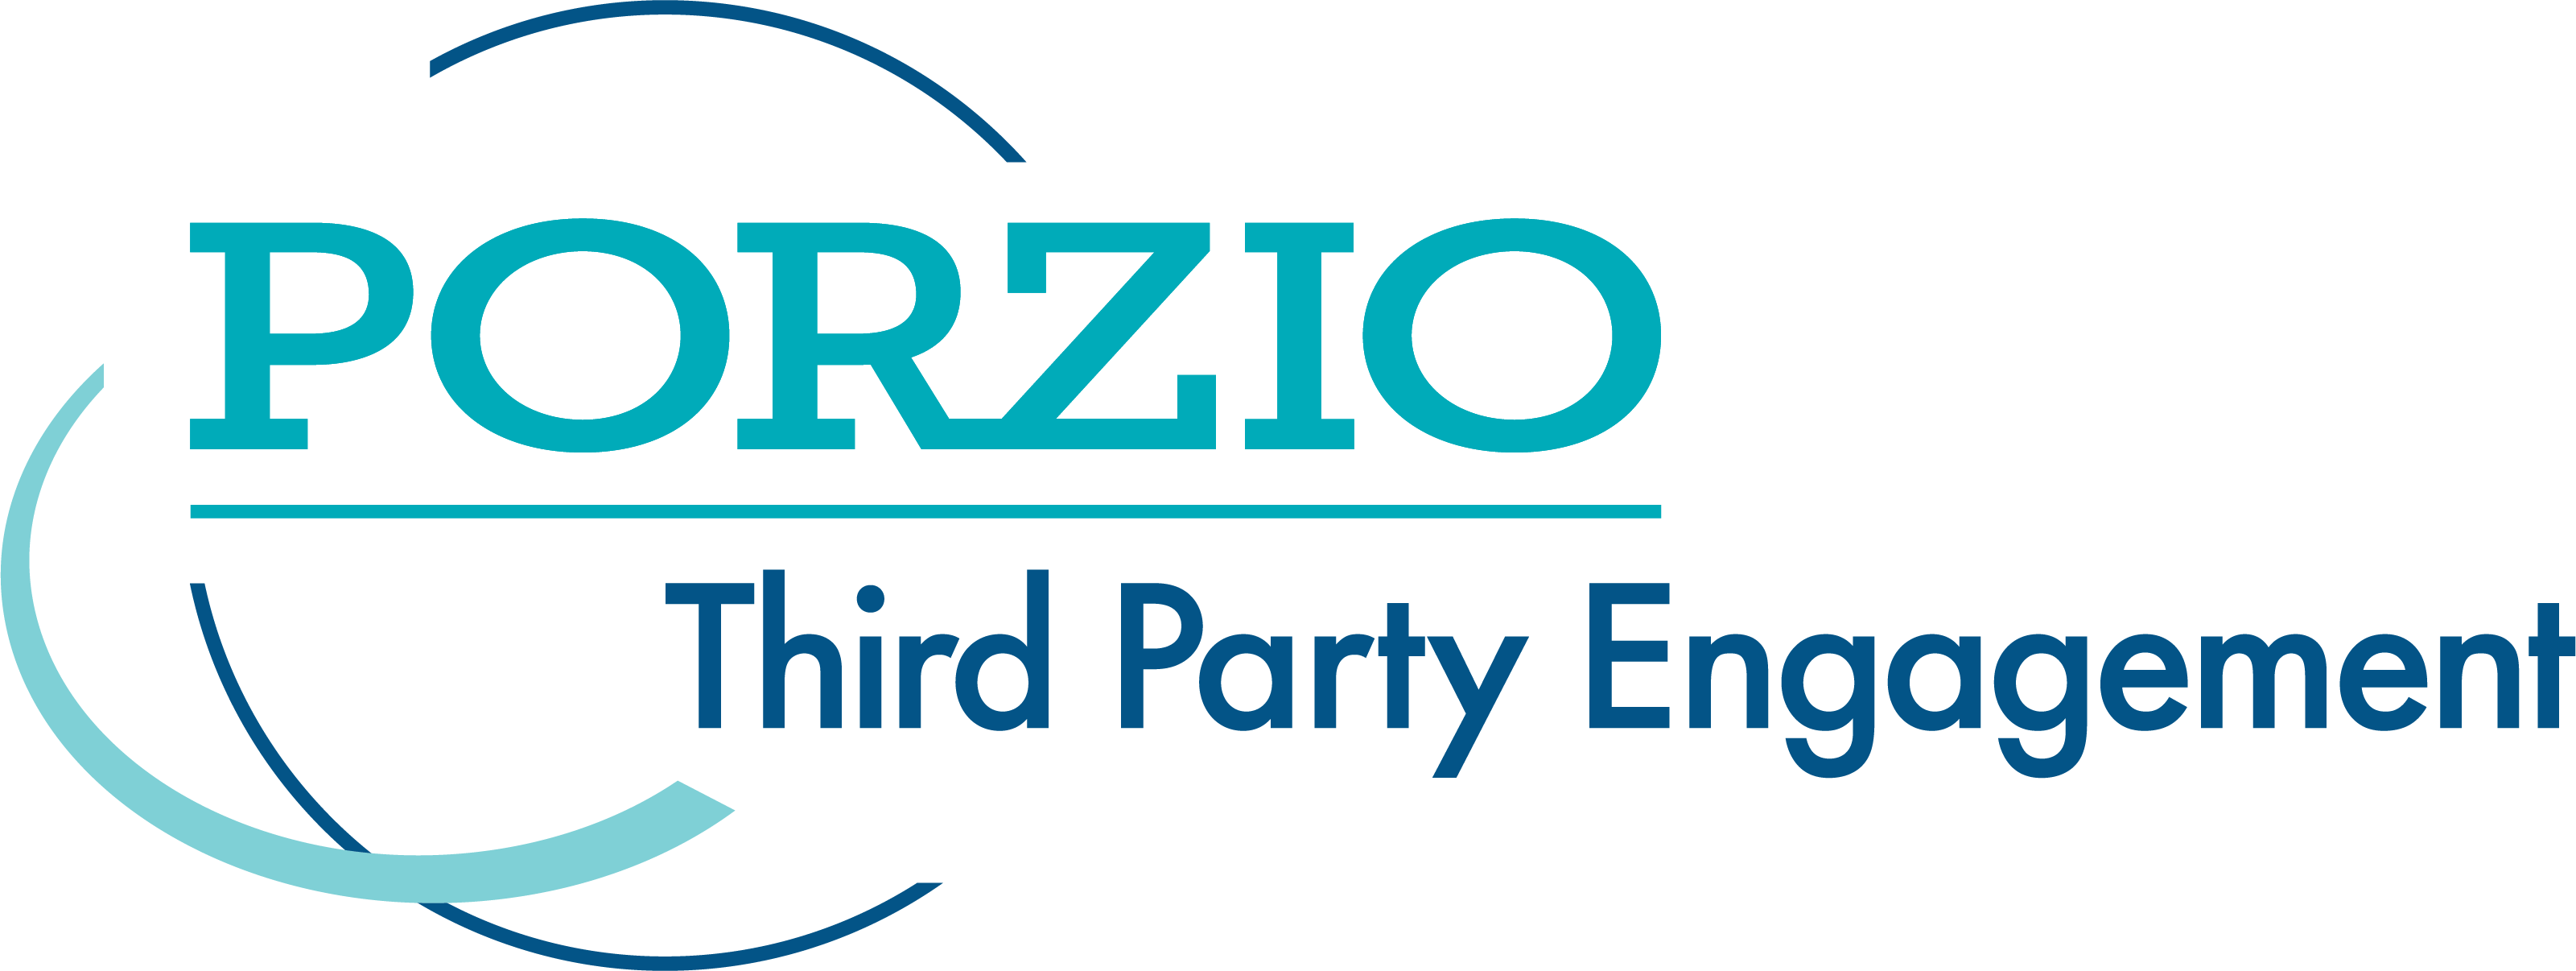 PLS_Third Party Engagement_Logo_PNG